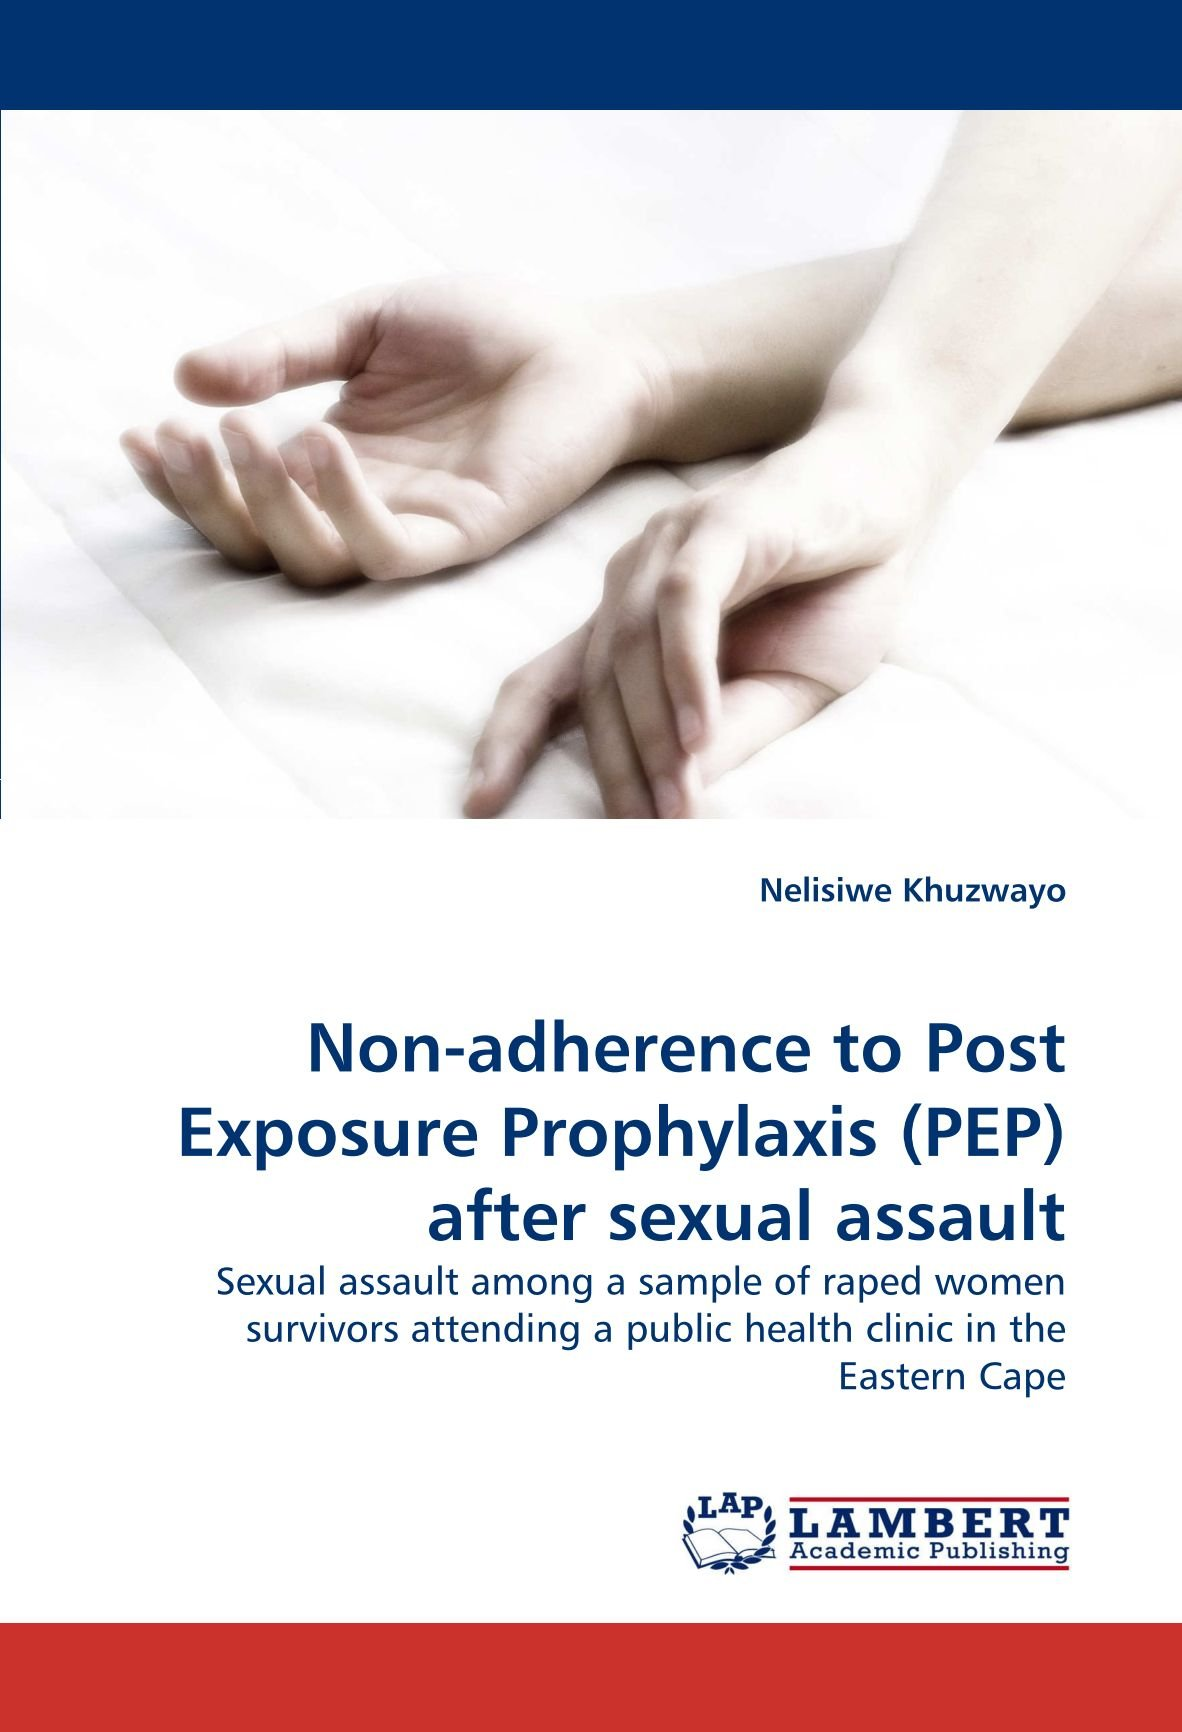 Download Non-adherence to Post Exposure Prophylaxis (PEP) after sexual assault: Sexual assault among a sample of raped women survivors attending a public health clinic in the Eastern Cape pdf